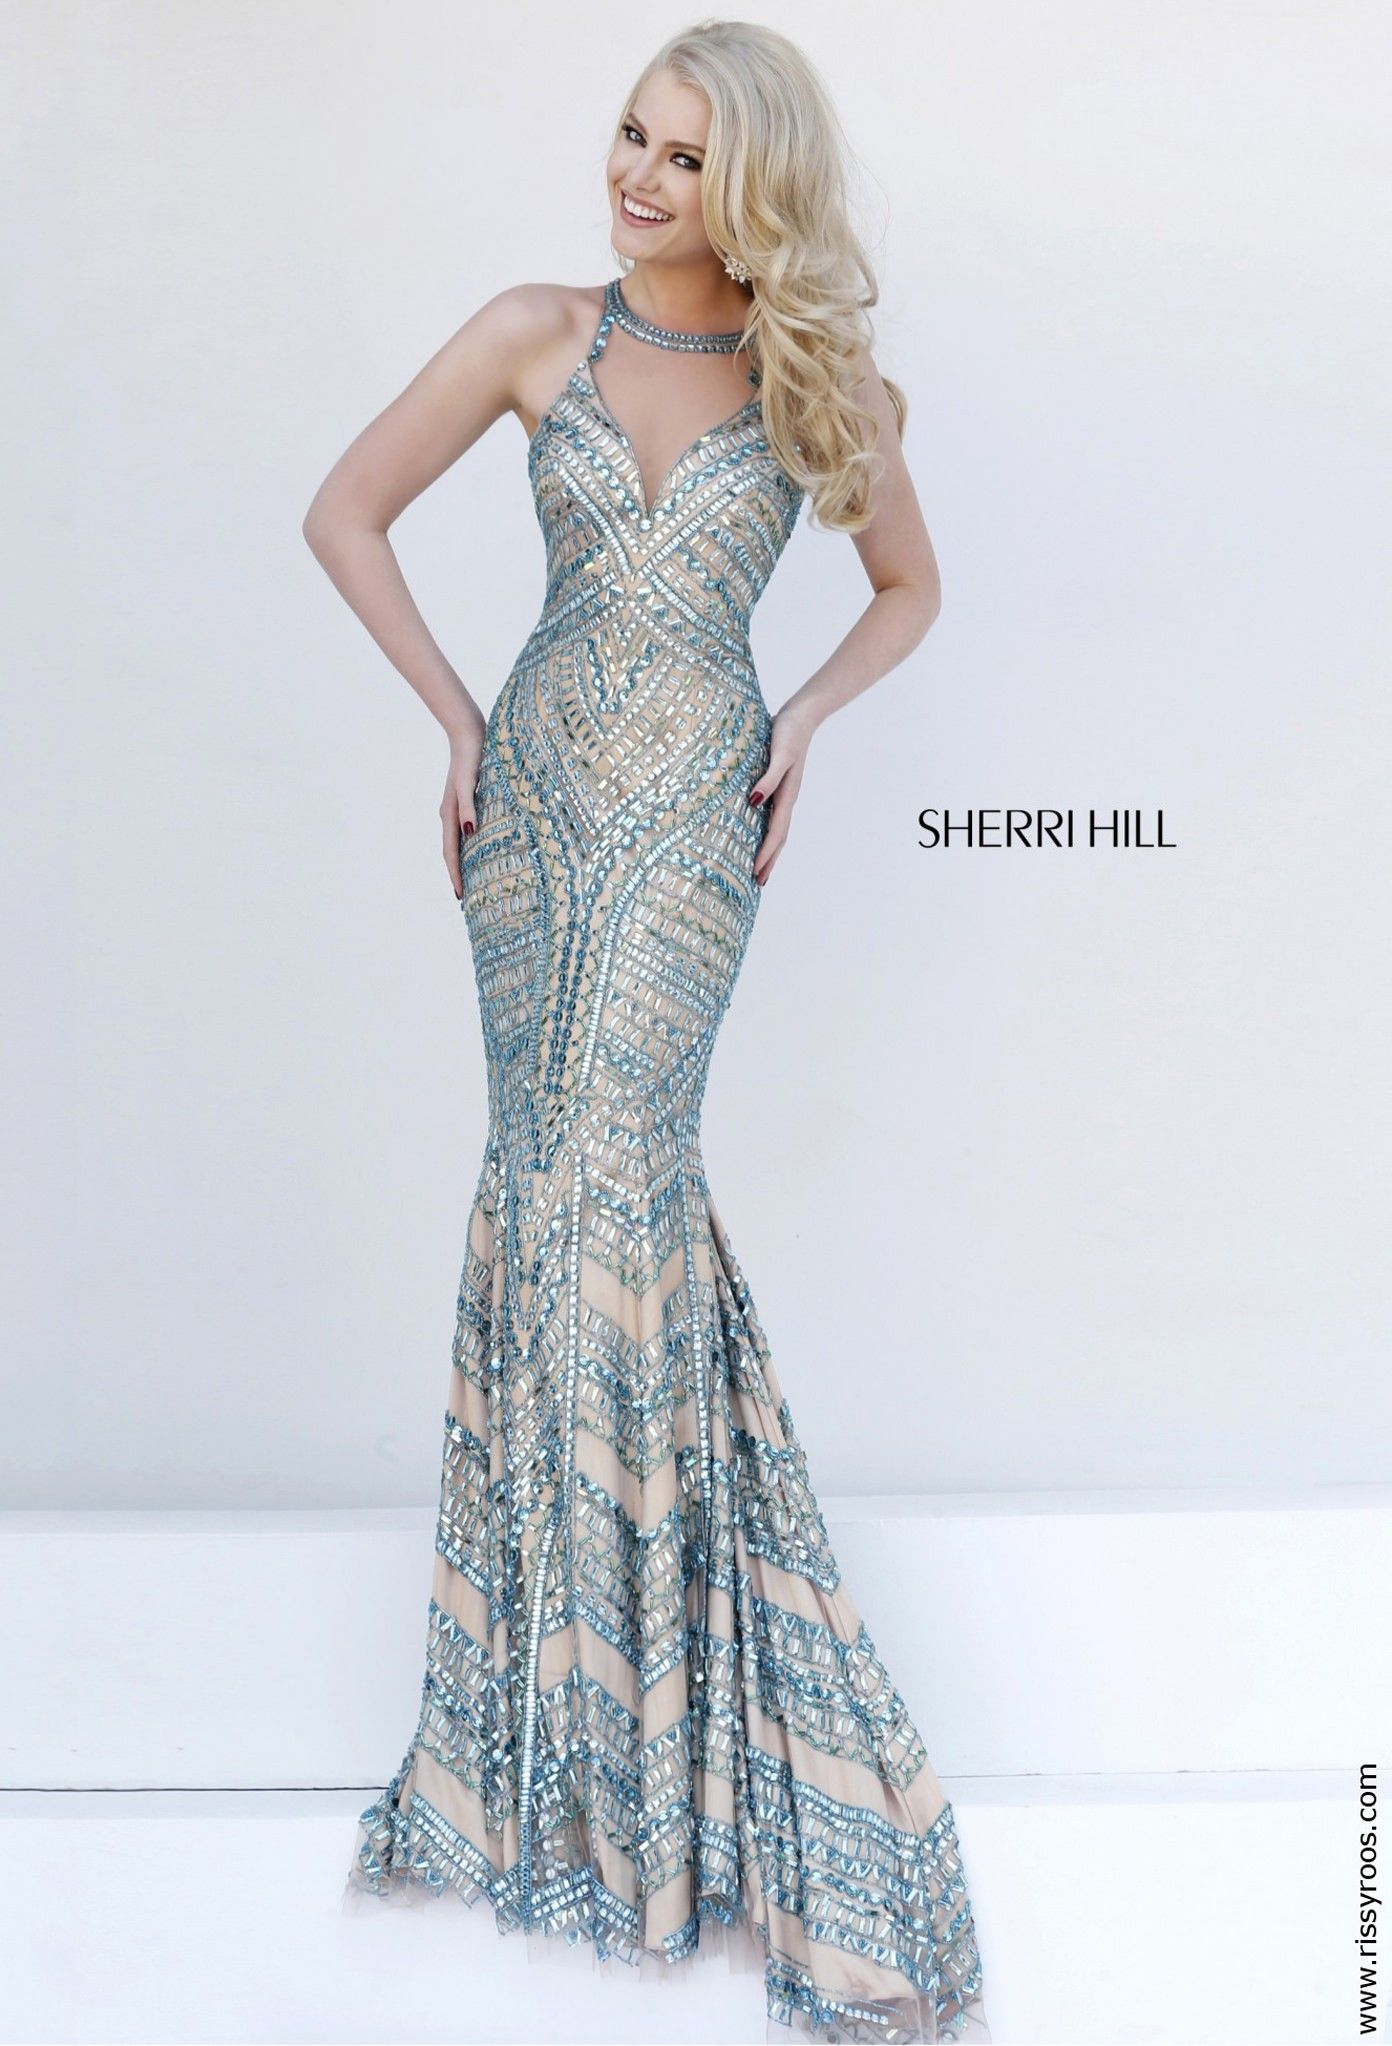 Sherri Hill 1959 Crystal Beaded Sleeveless Evening Gown   Pageant ...